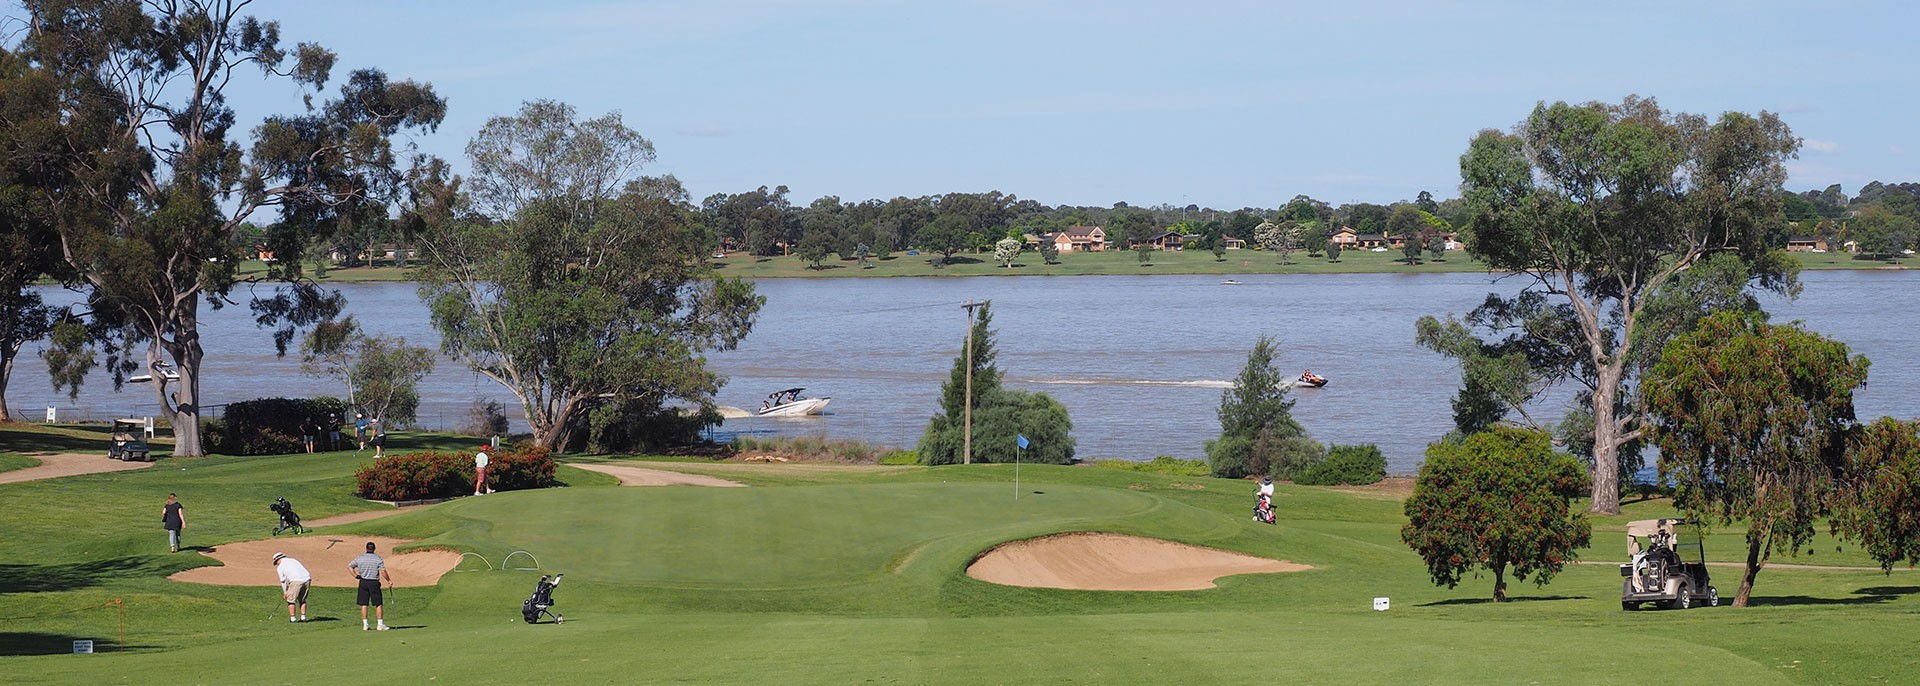 Championships Golf Course_ Wagga Wagga Country Club